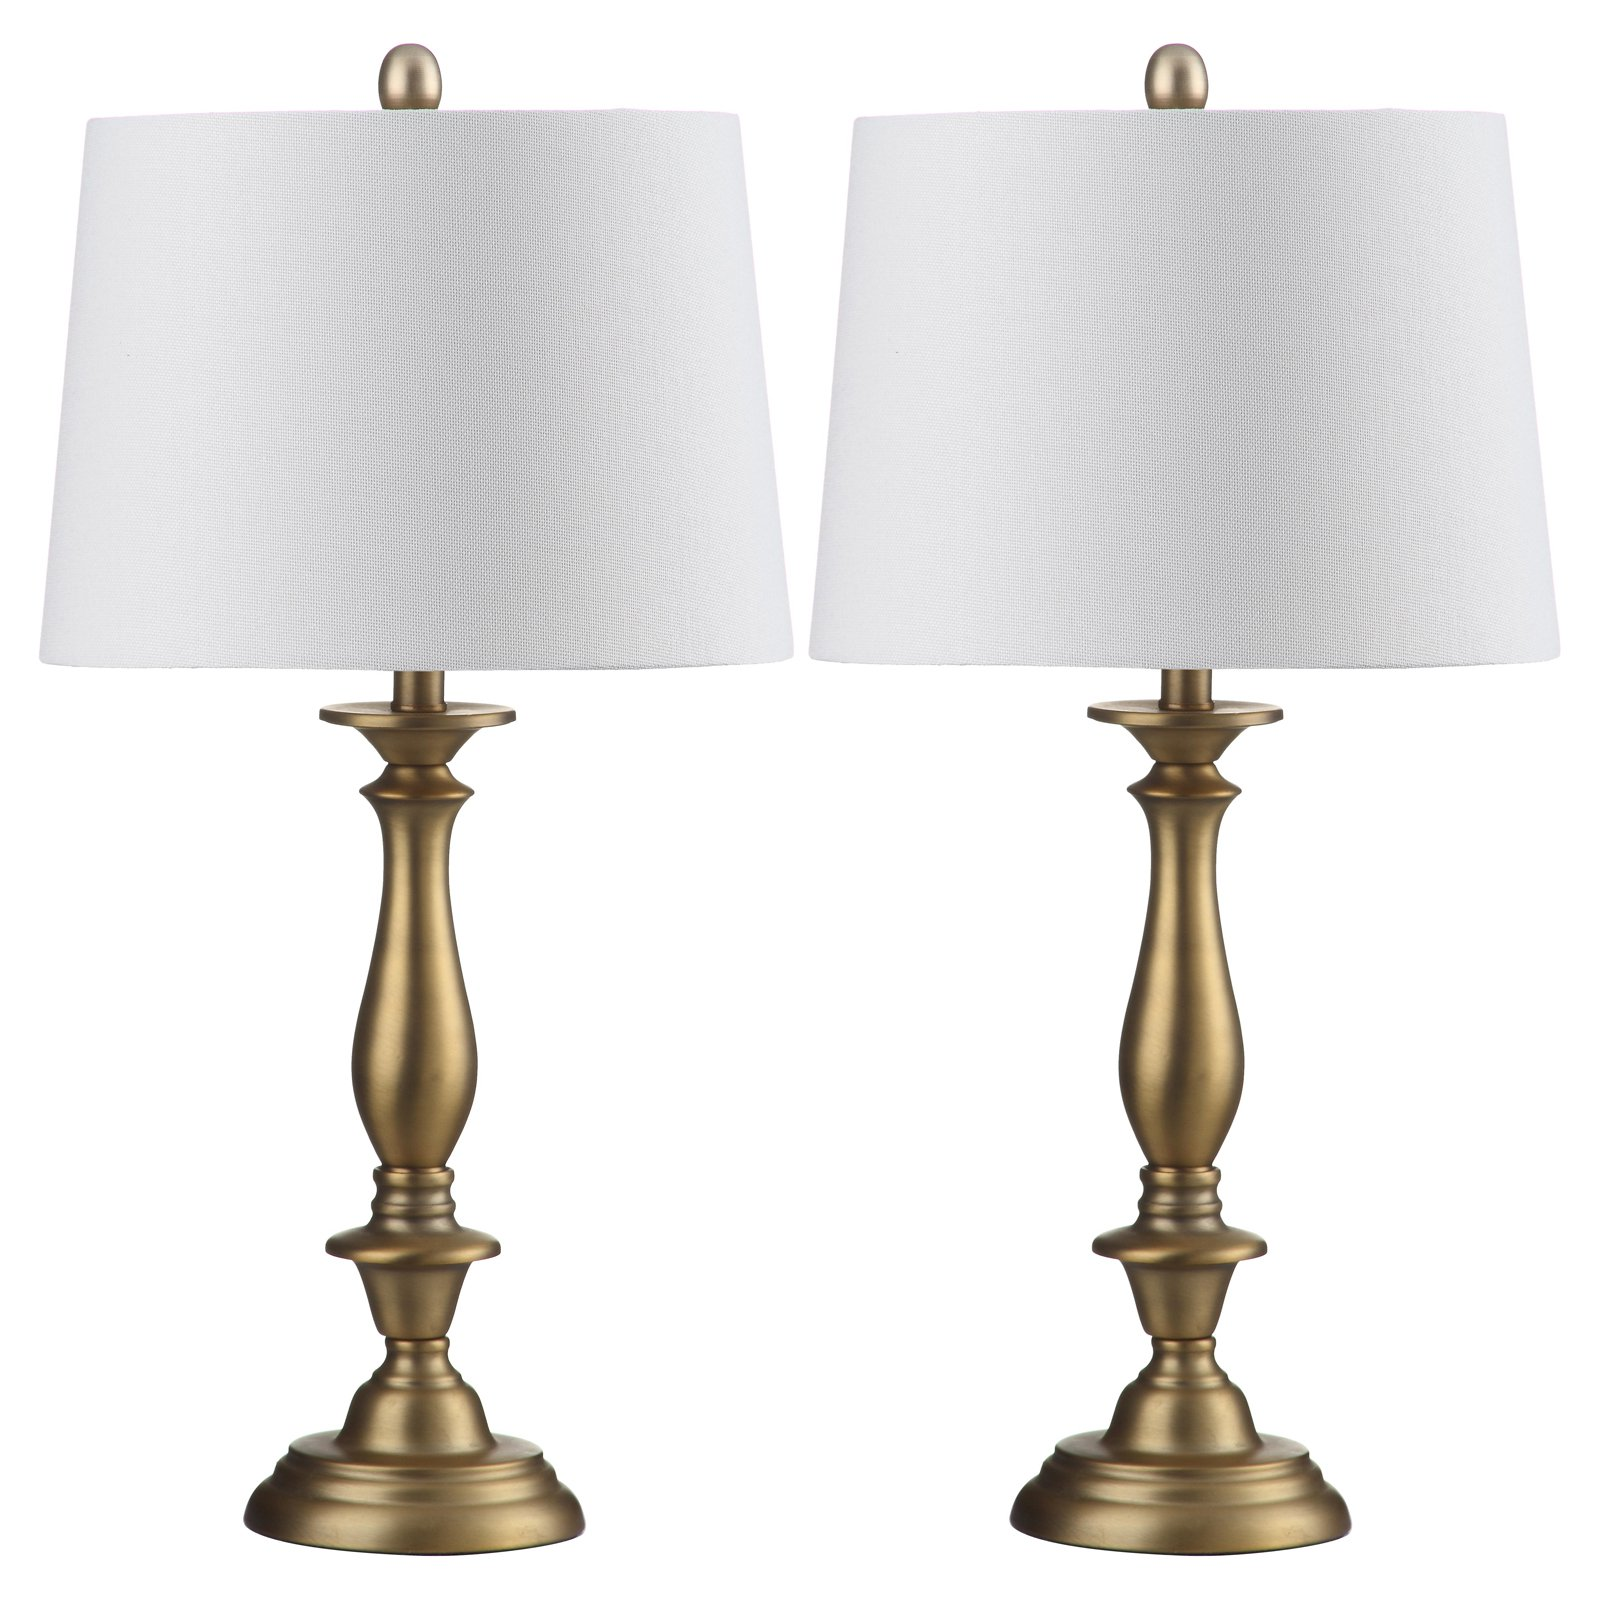 Safavieh Brighton Candlestick Table Lamp With Cfl Bulb Gold With